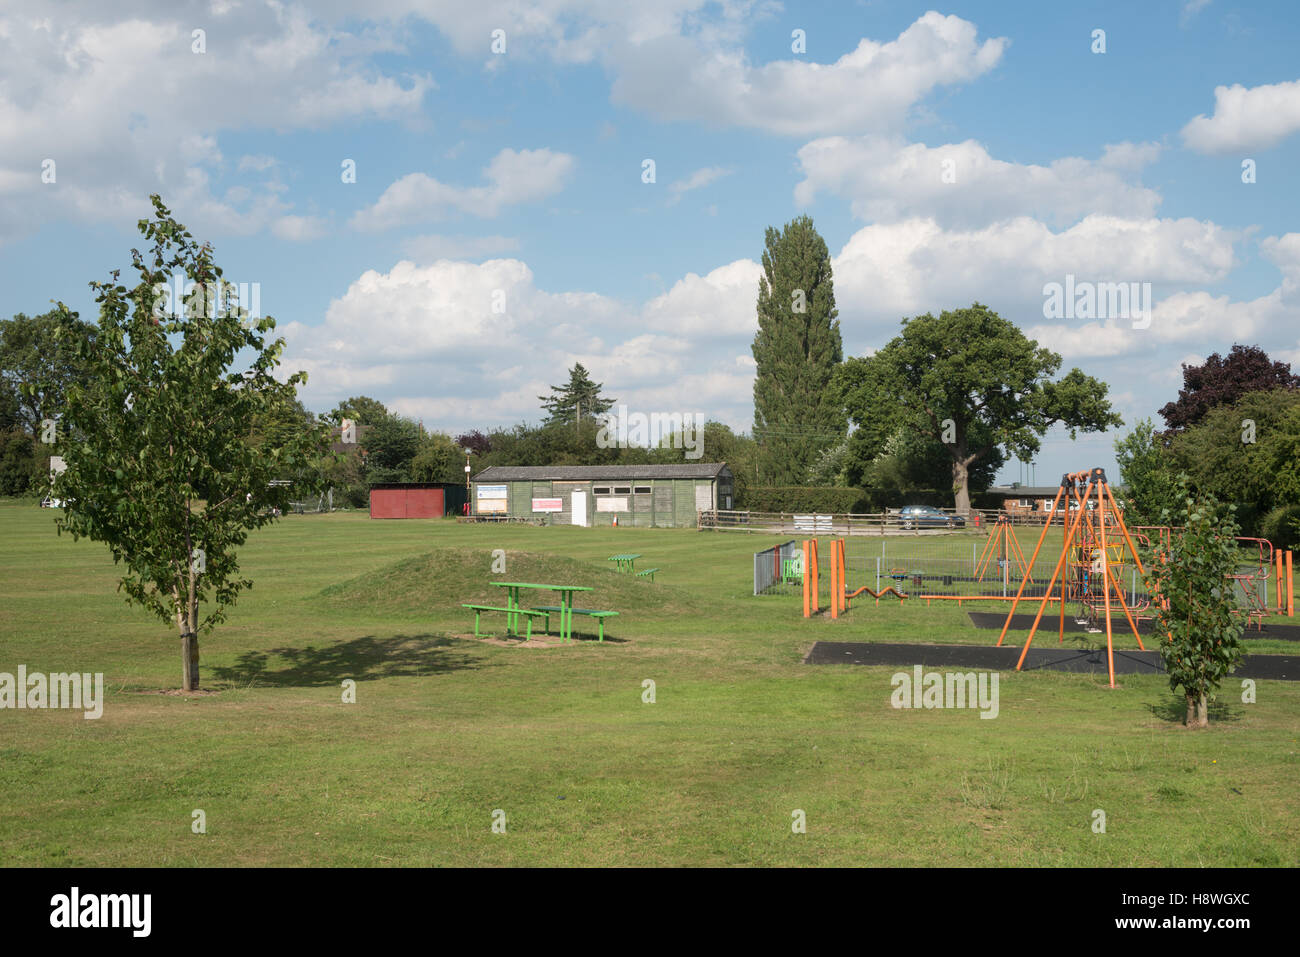 Snitterfield Sports Club and Park, Warwickshire, England, UK - Stock Image